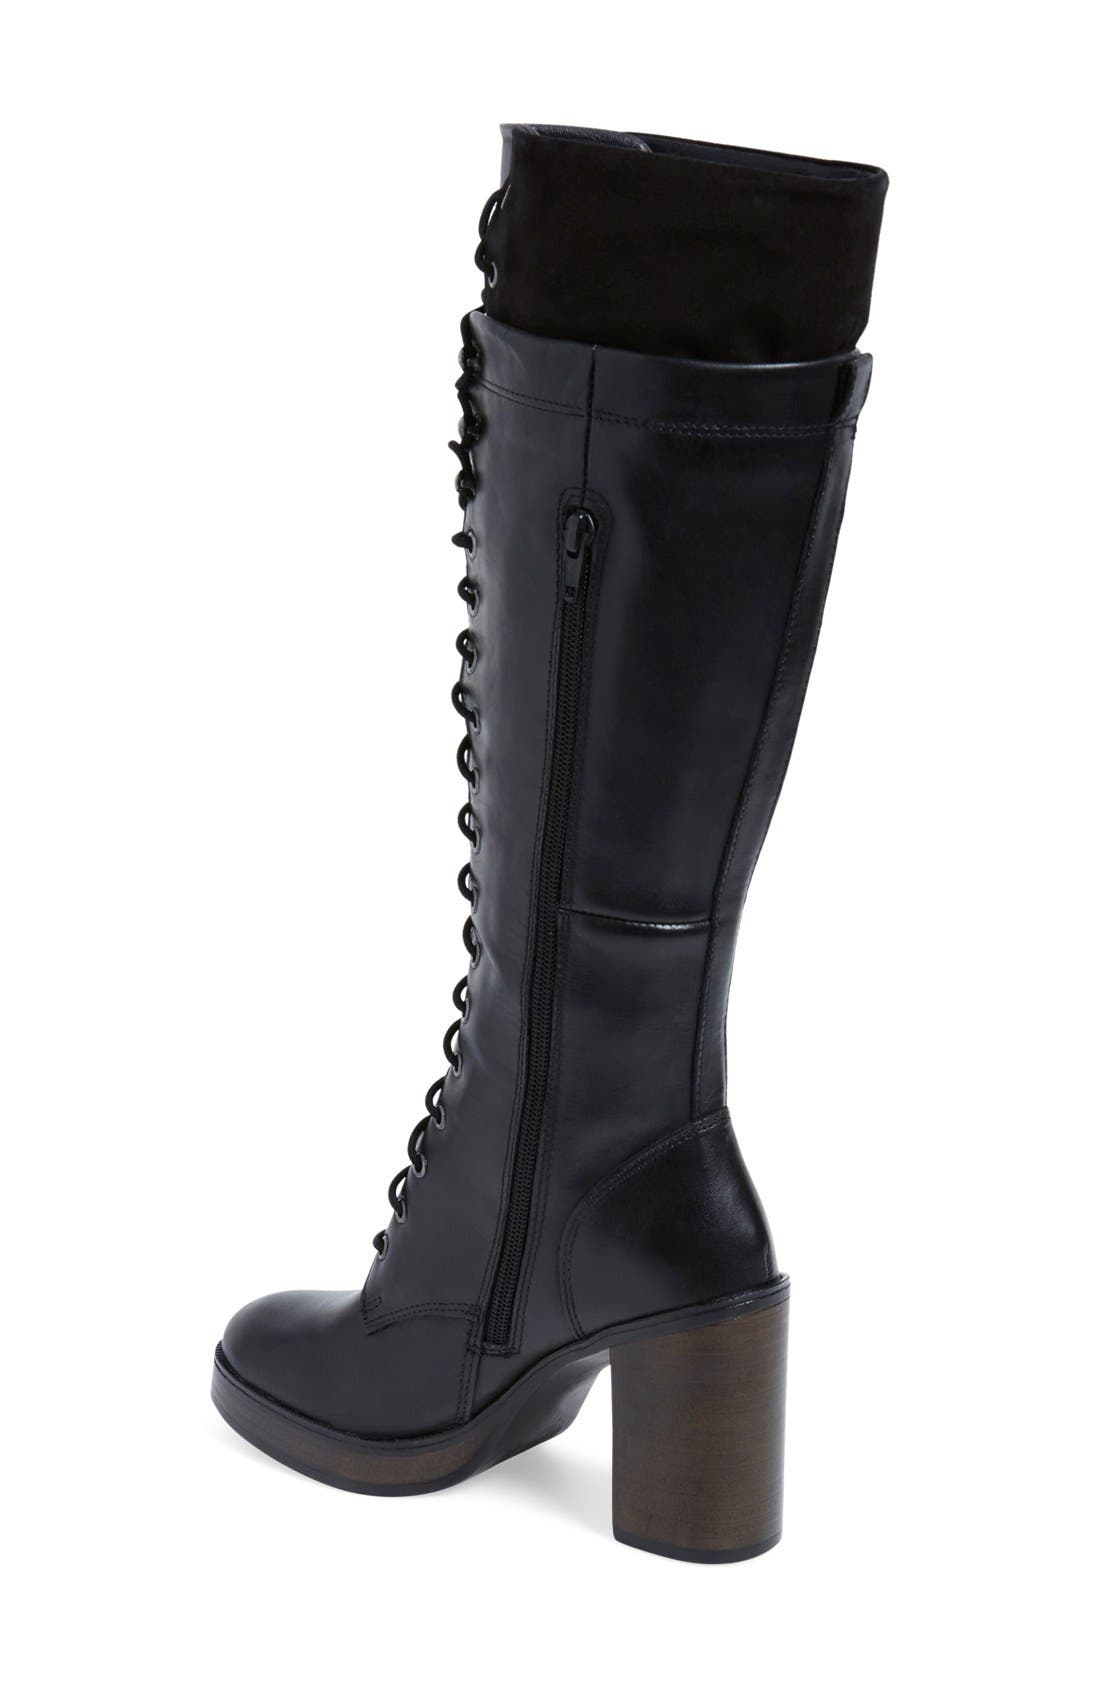 Alternate Image 2  - Steve Madden 'Nitefall' Tall Lace Up Boot (Women)